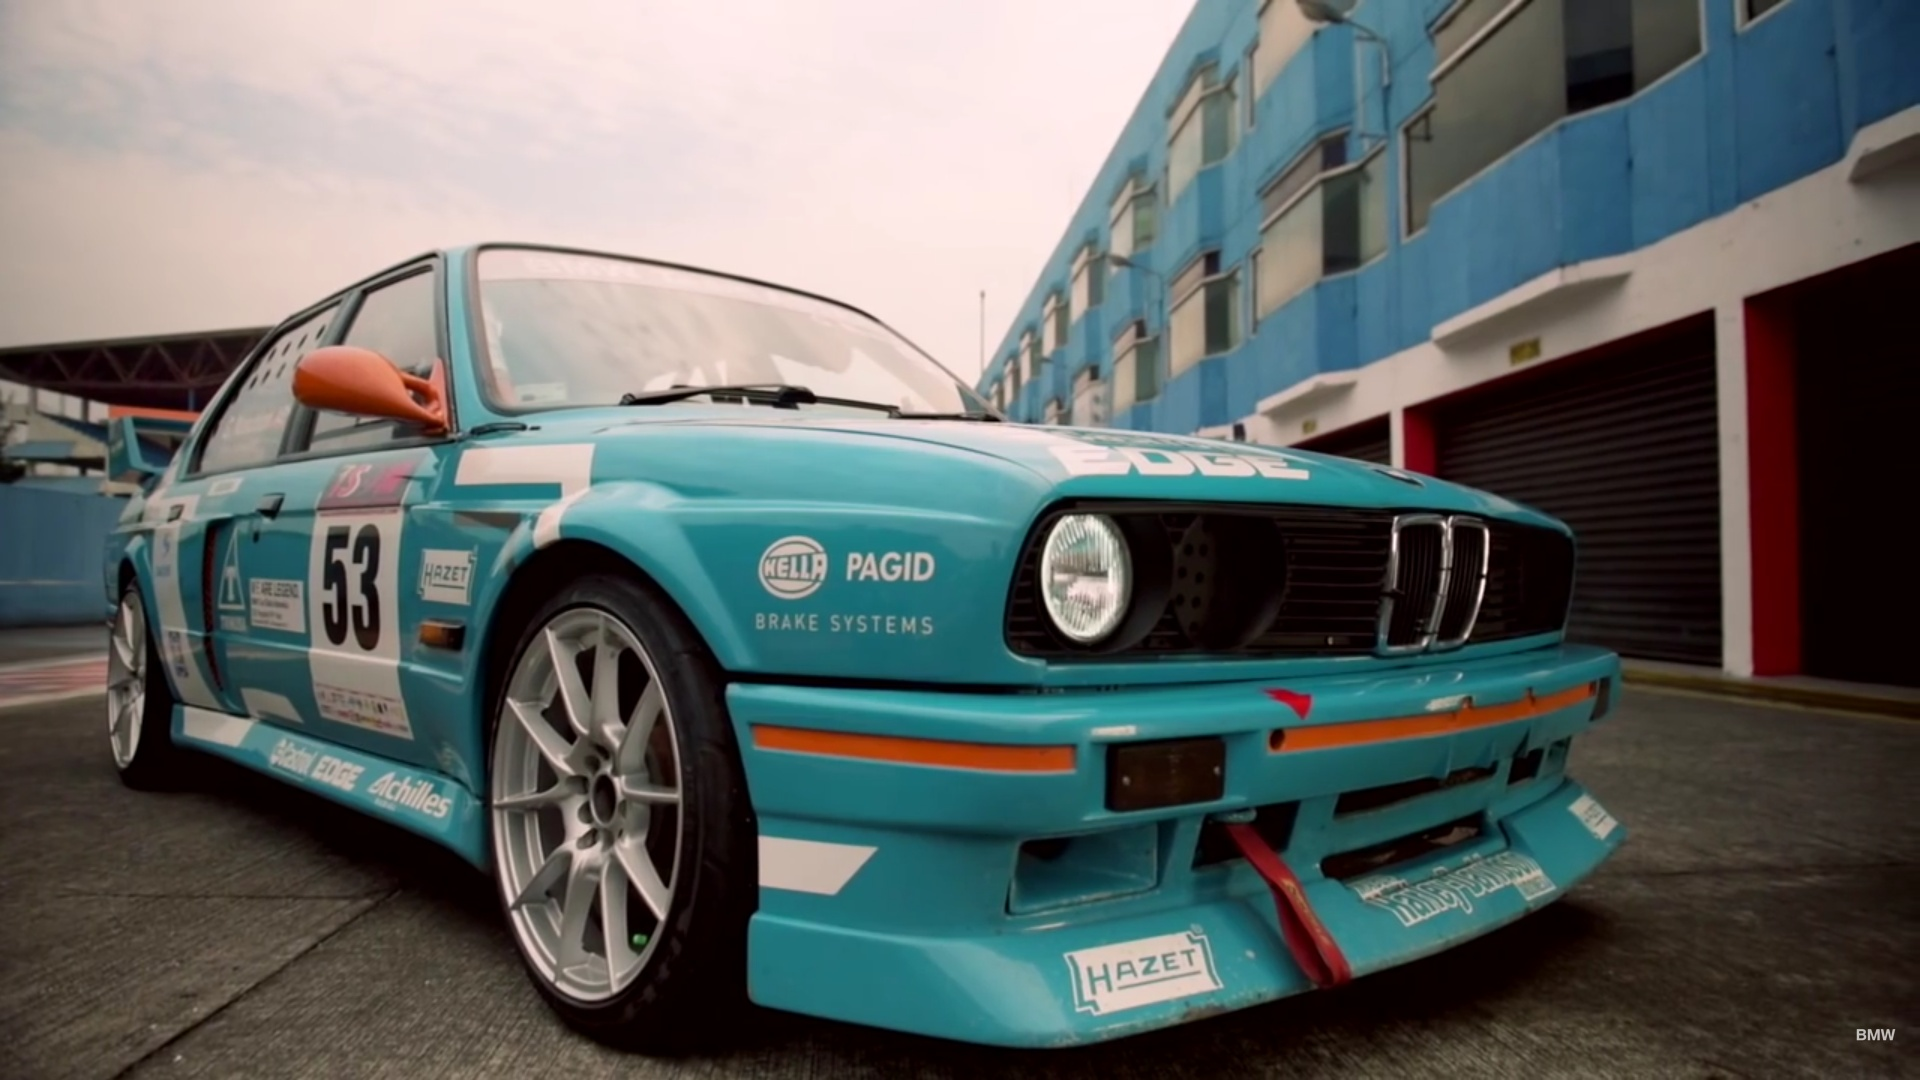 E30 Bmw Modified Luxury This Man Won Over 120 Races with His Modified Bmw E30 316i Of Awesome E30 Bmw Modified